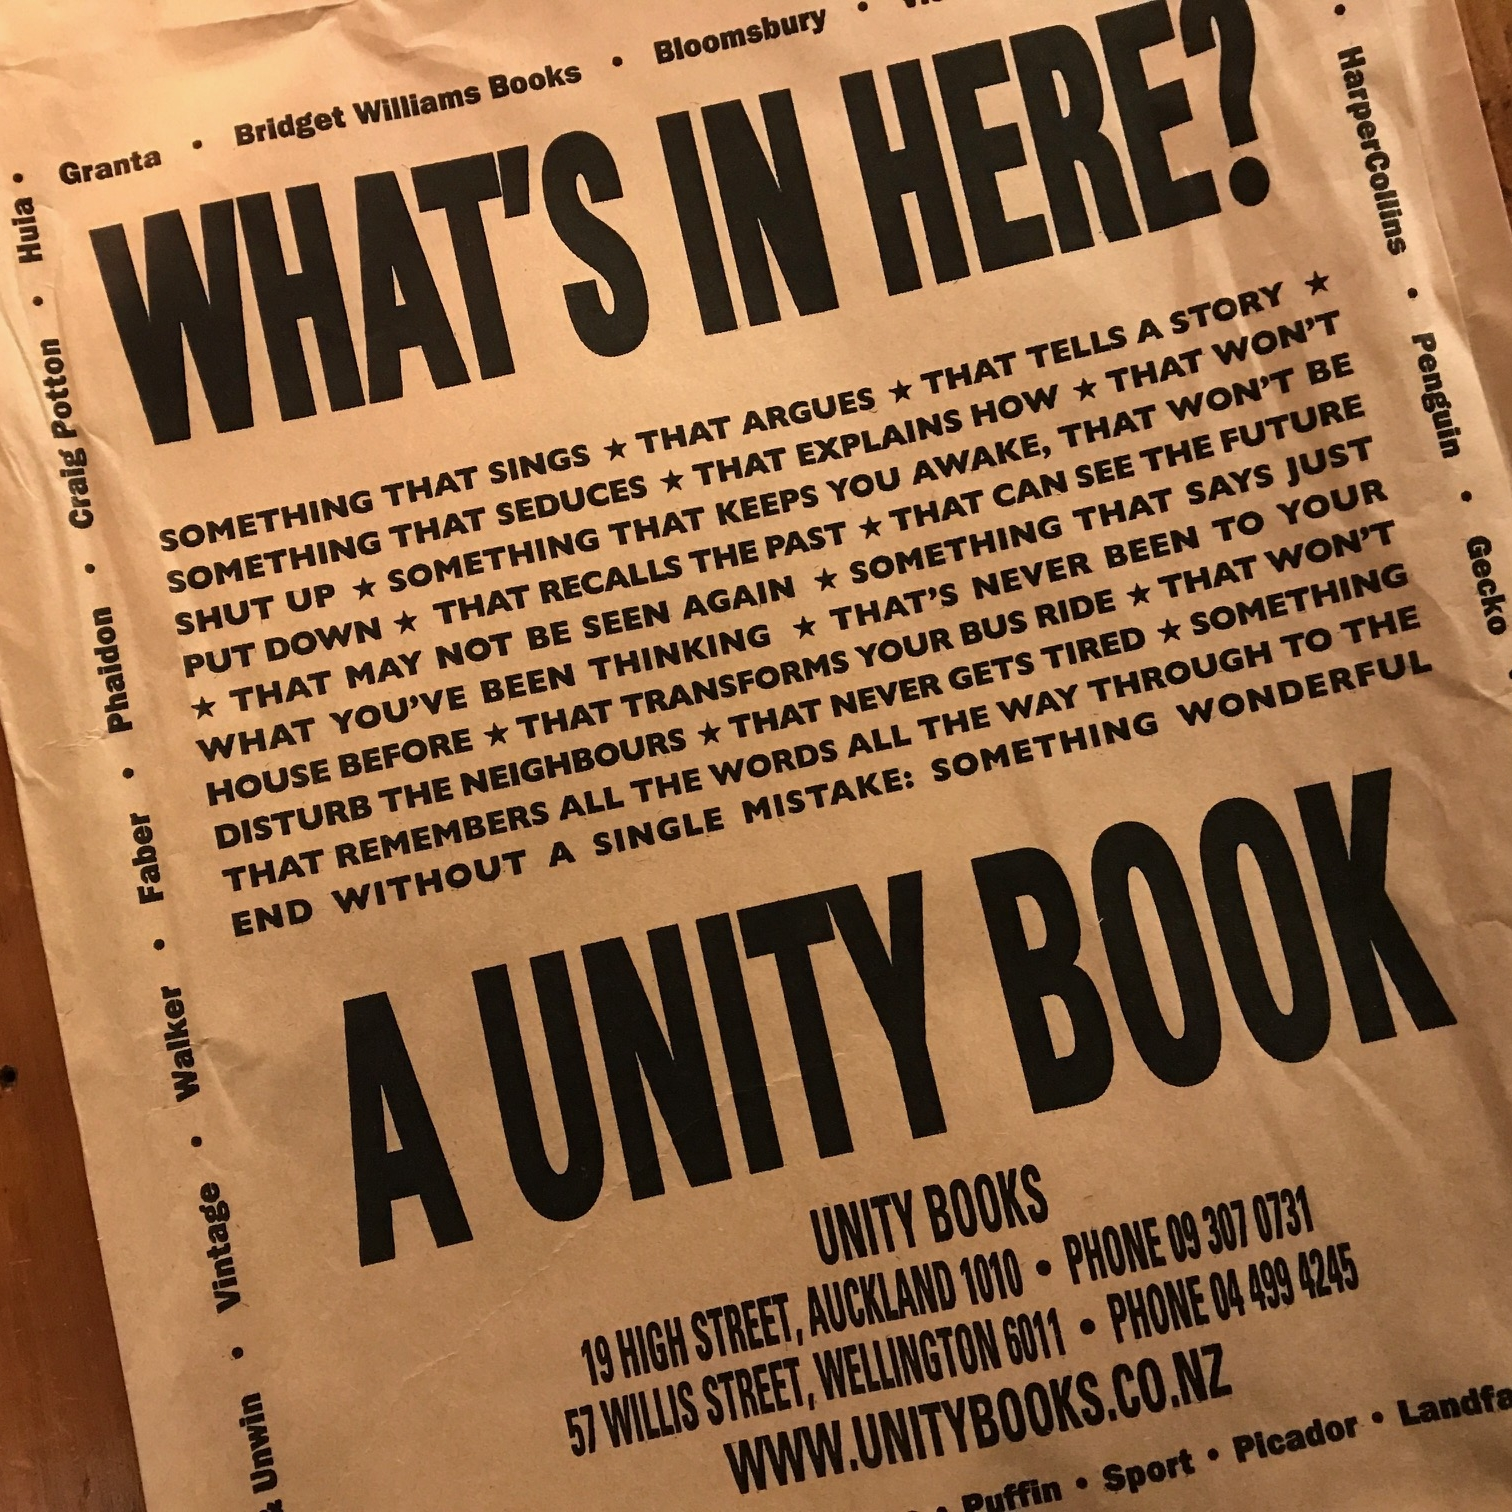 Unity Books, Wellington by The Doubtful Traveller